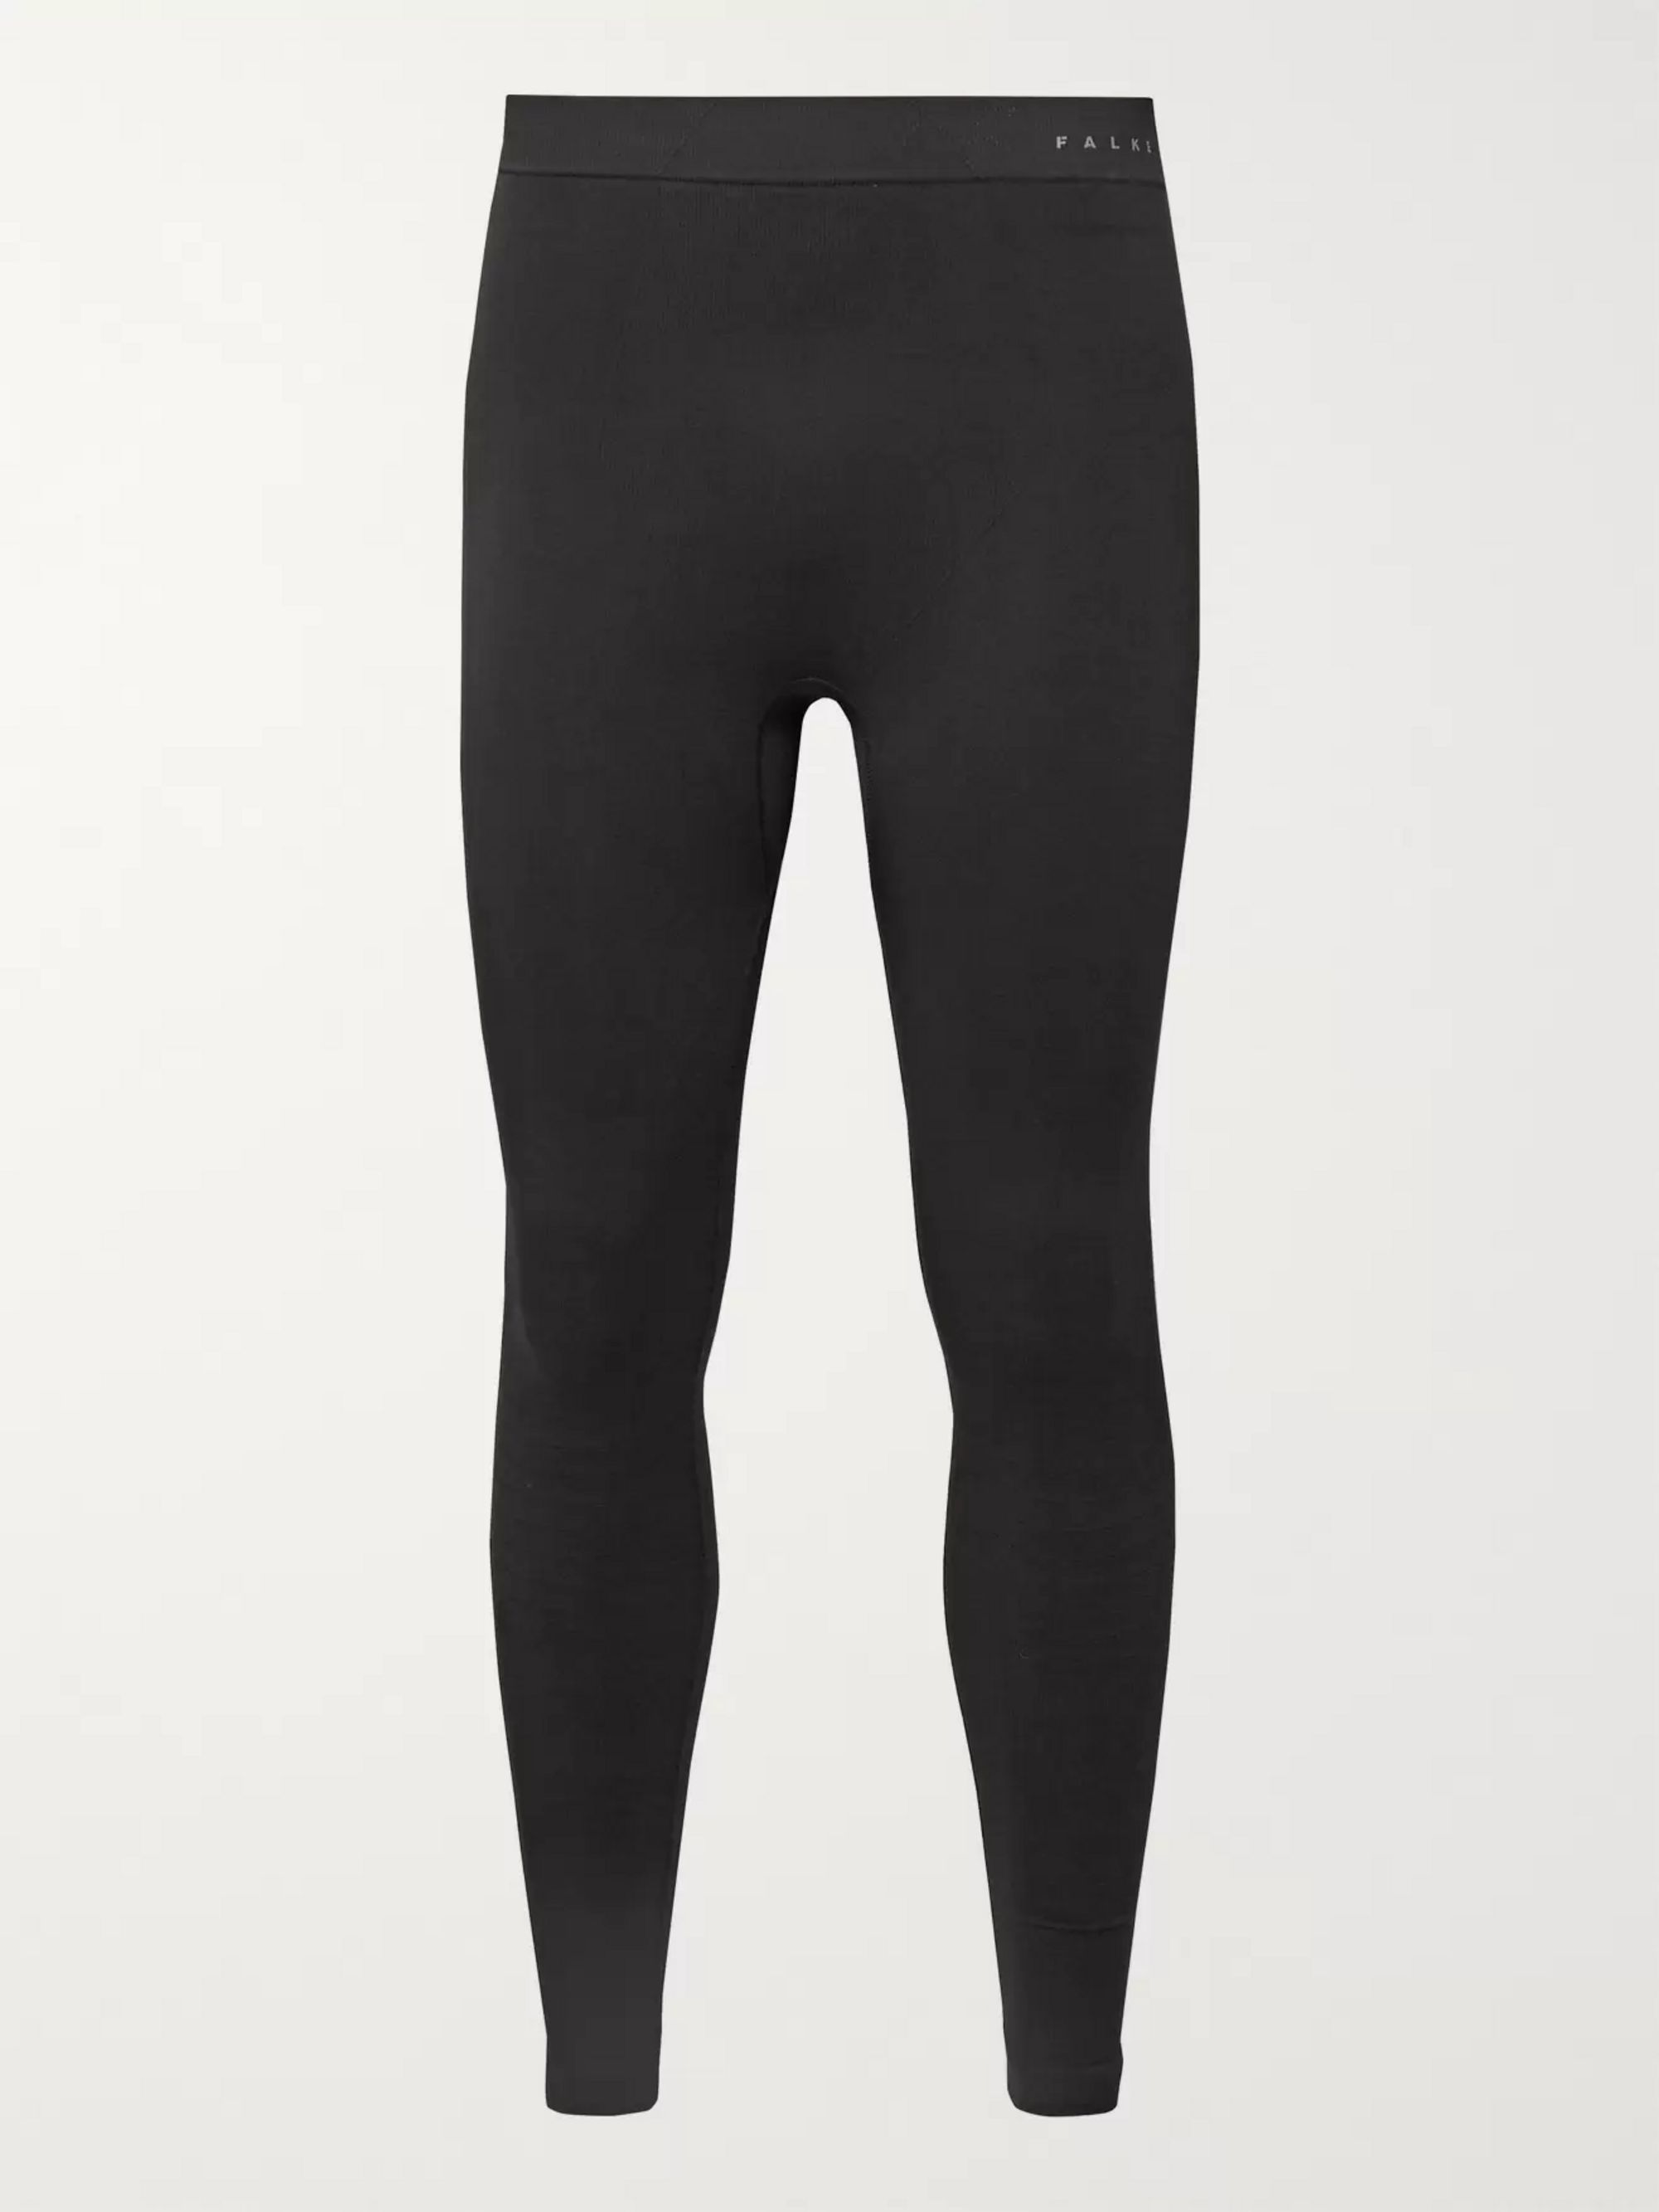 FALKE Ergonomic Sport System Maximum Warm Stretch Tech-Jersey Thermal Ski Tights